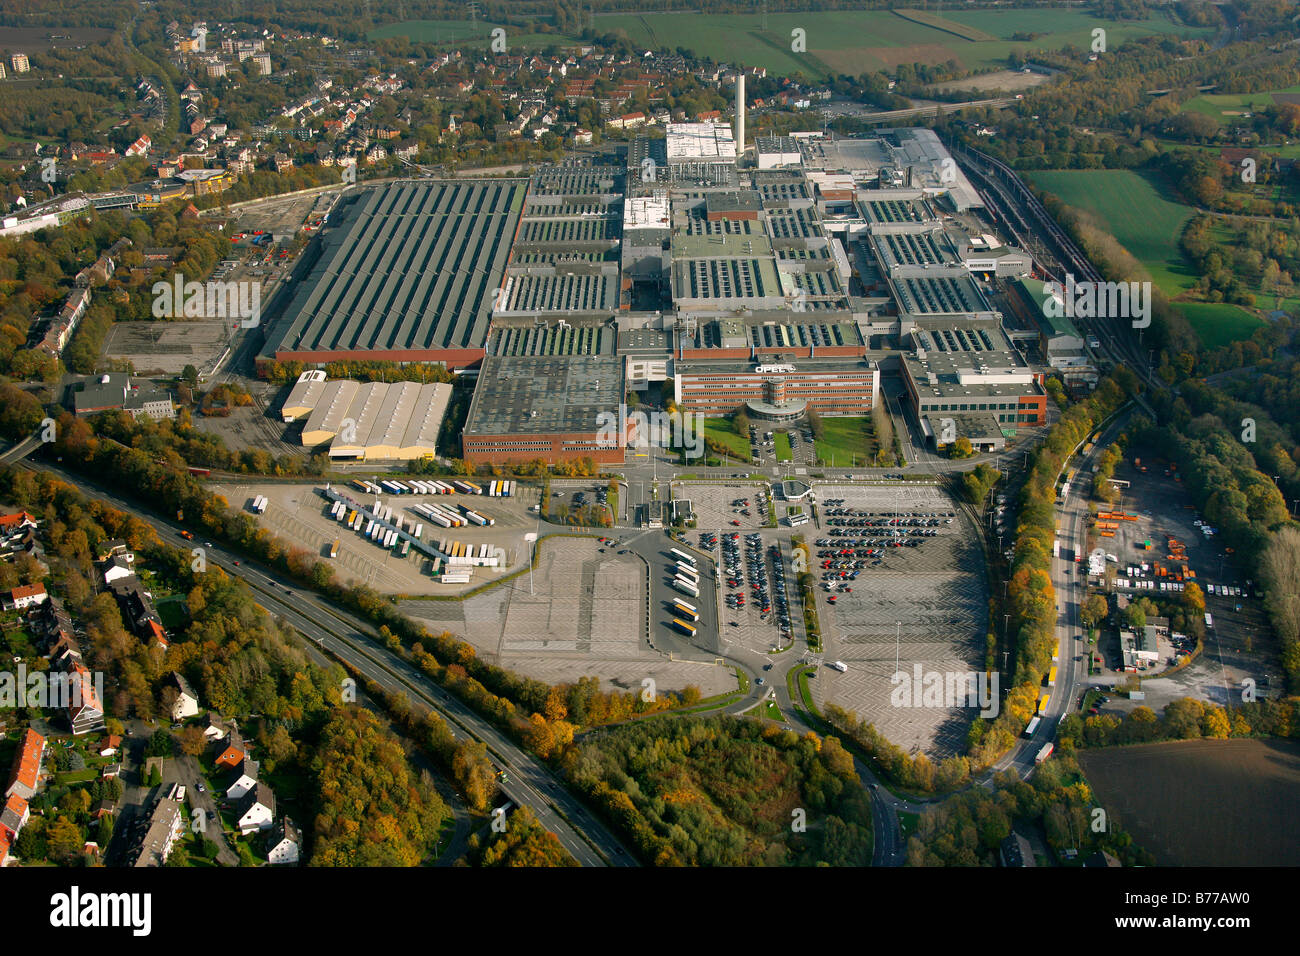 Aerial photograph, Opel Factory 1, Langendreer, General Motors, pause in production, Bochum, Ruhr district, North - Stock Image